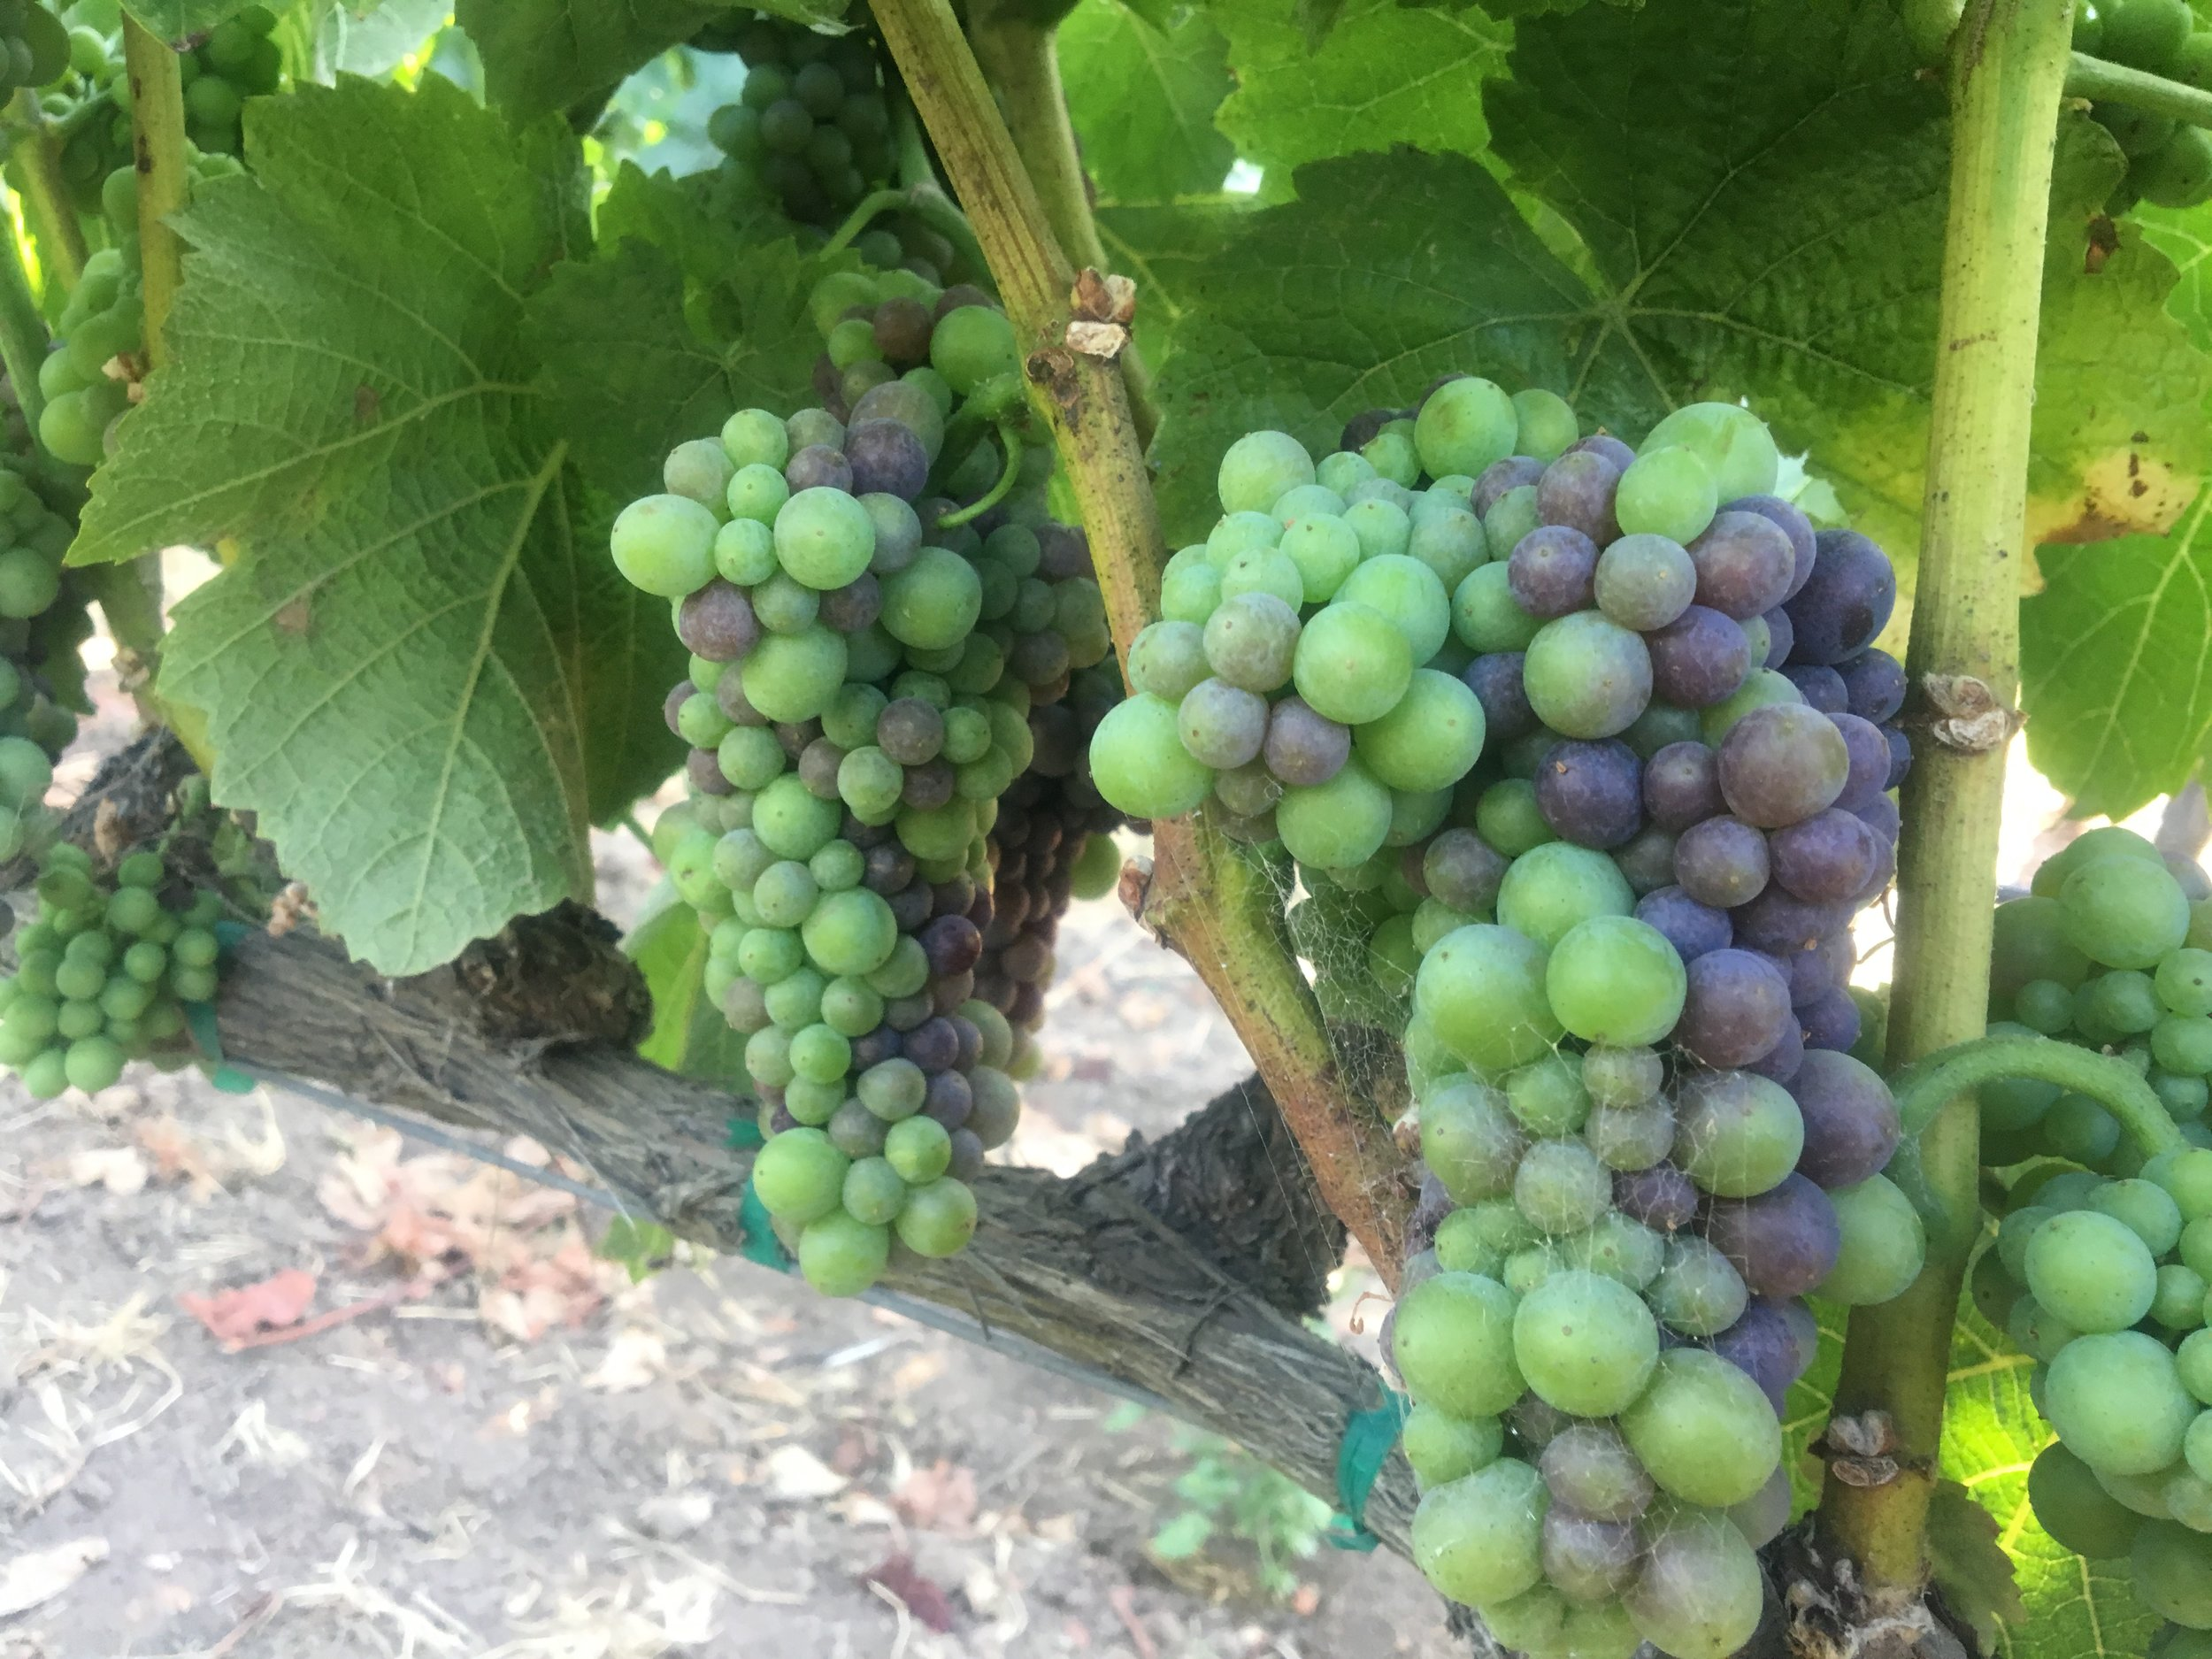 Our fruit at Soberanes going through veraison